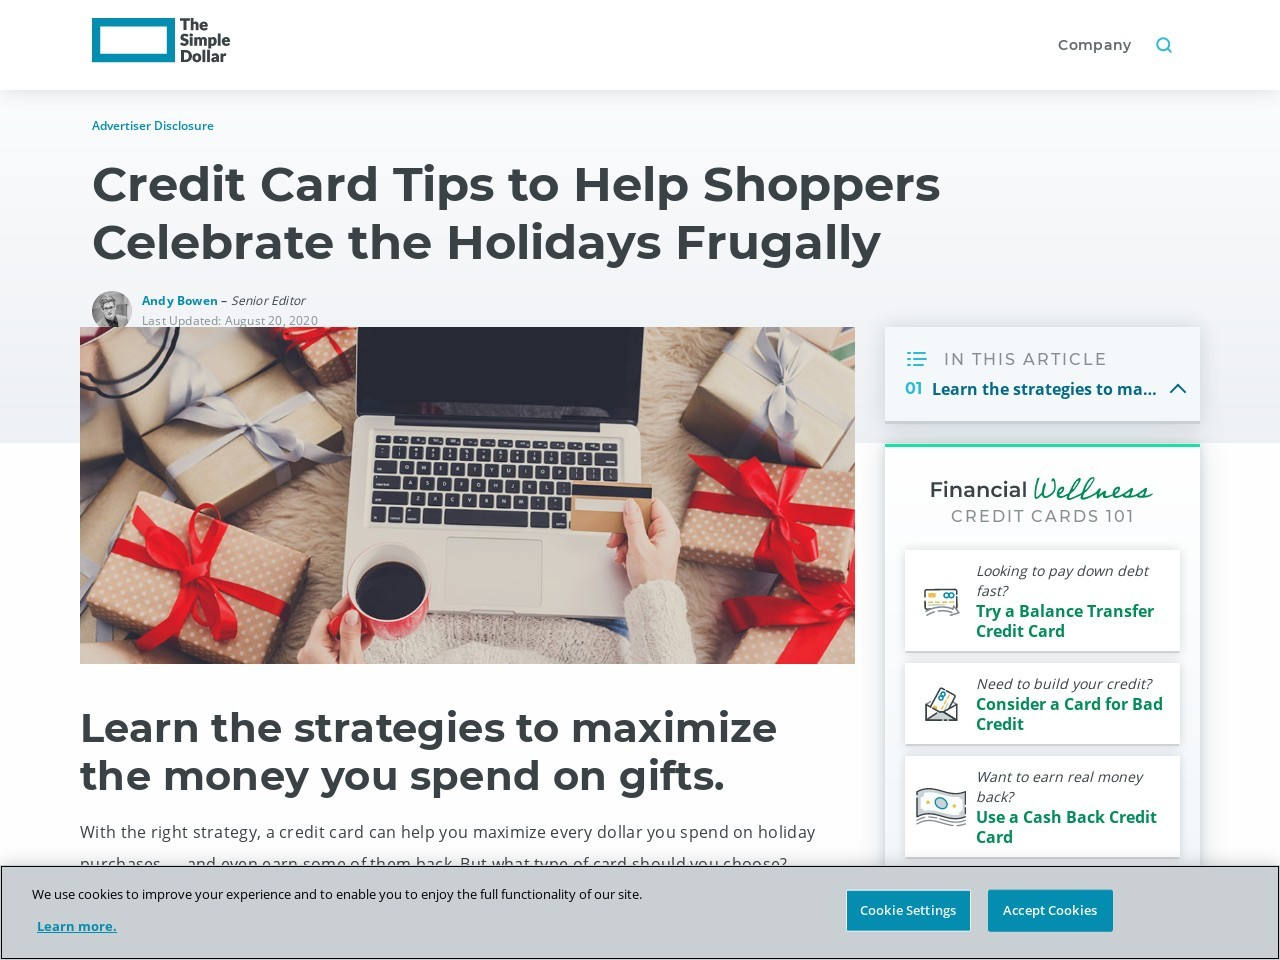 Credit Card Tips to Help Shoppers Celebrate the Holidays Frugally